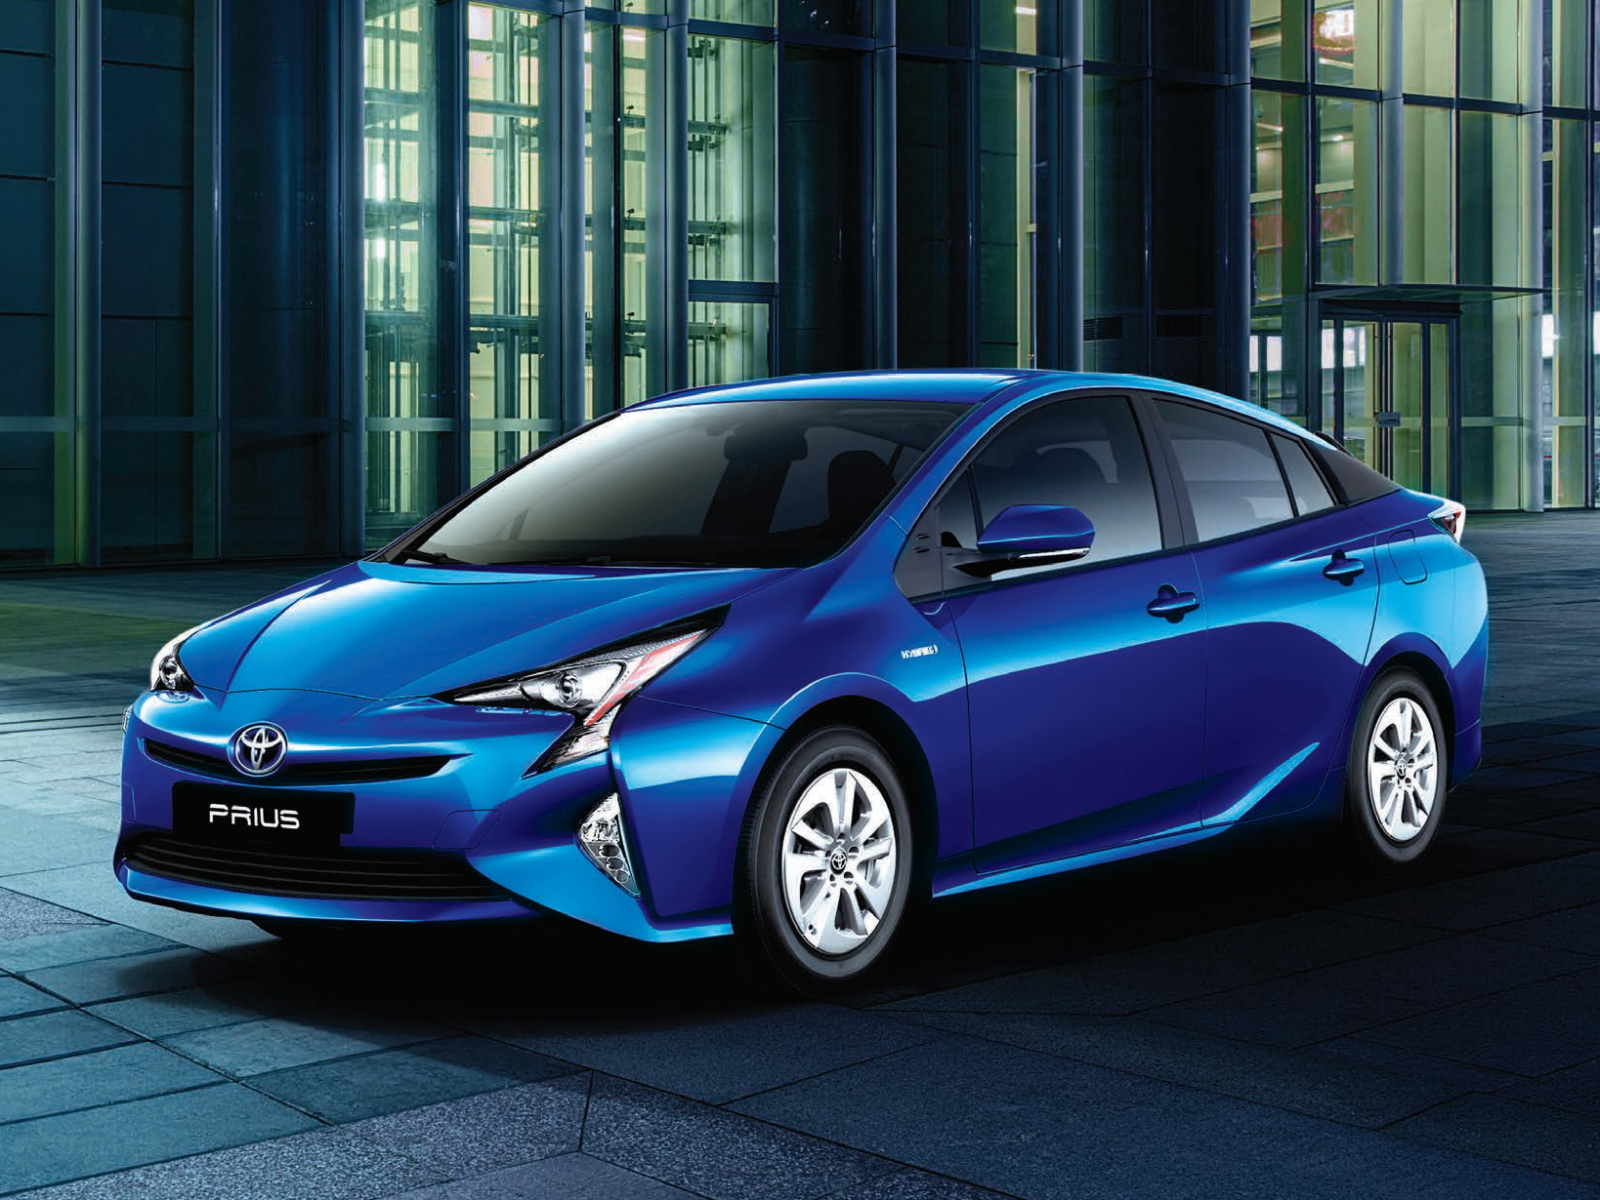 Aig Auto Insurance >> Toyota Prius wallpapers, free download